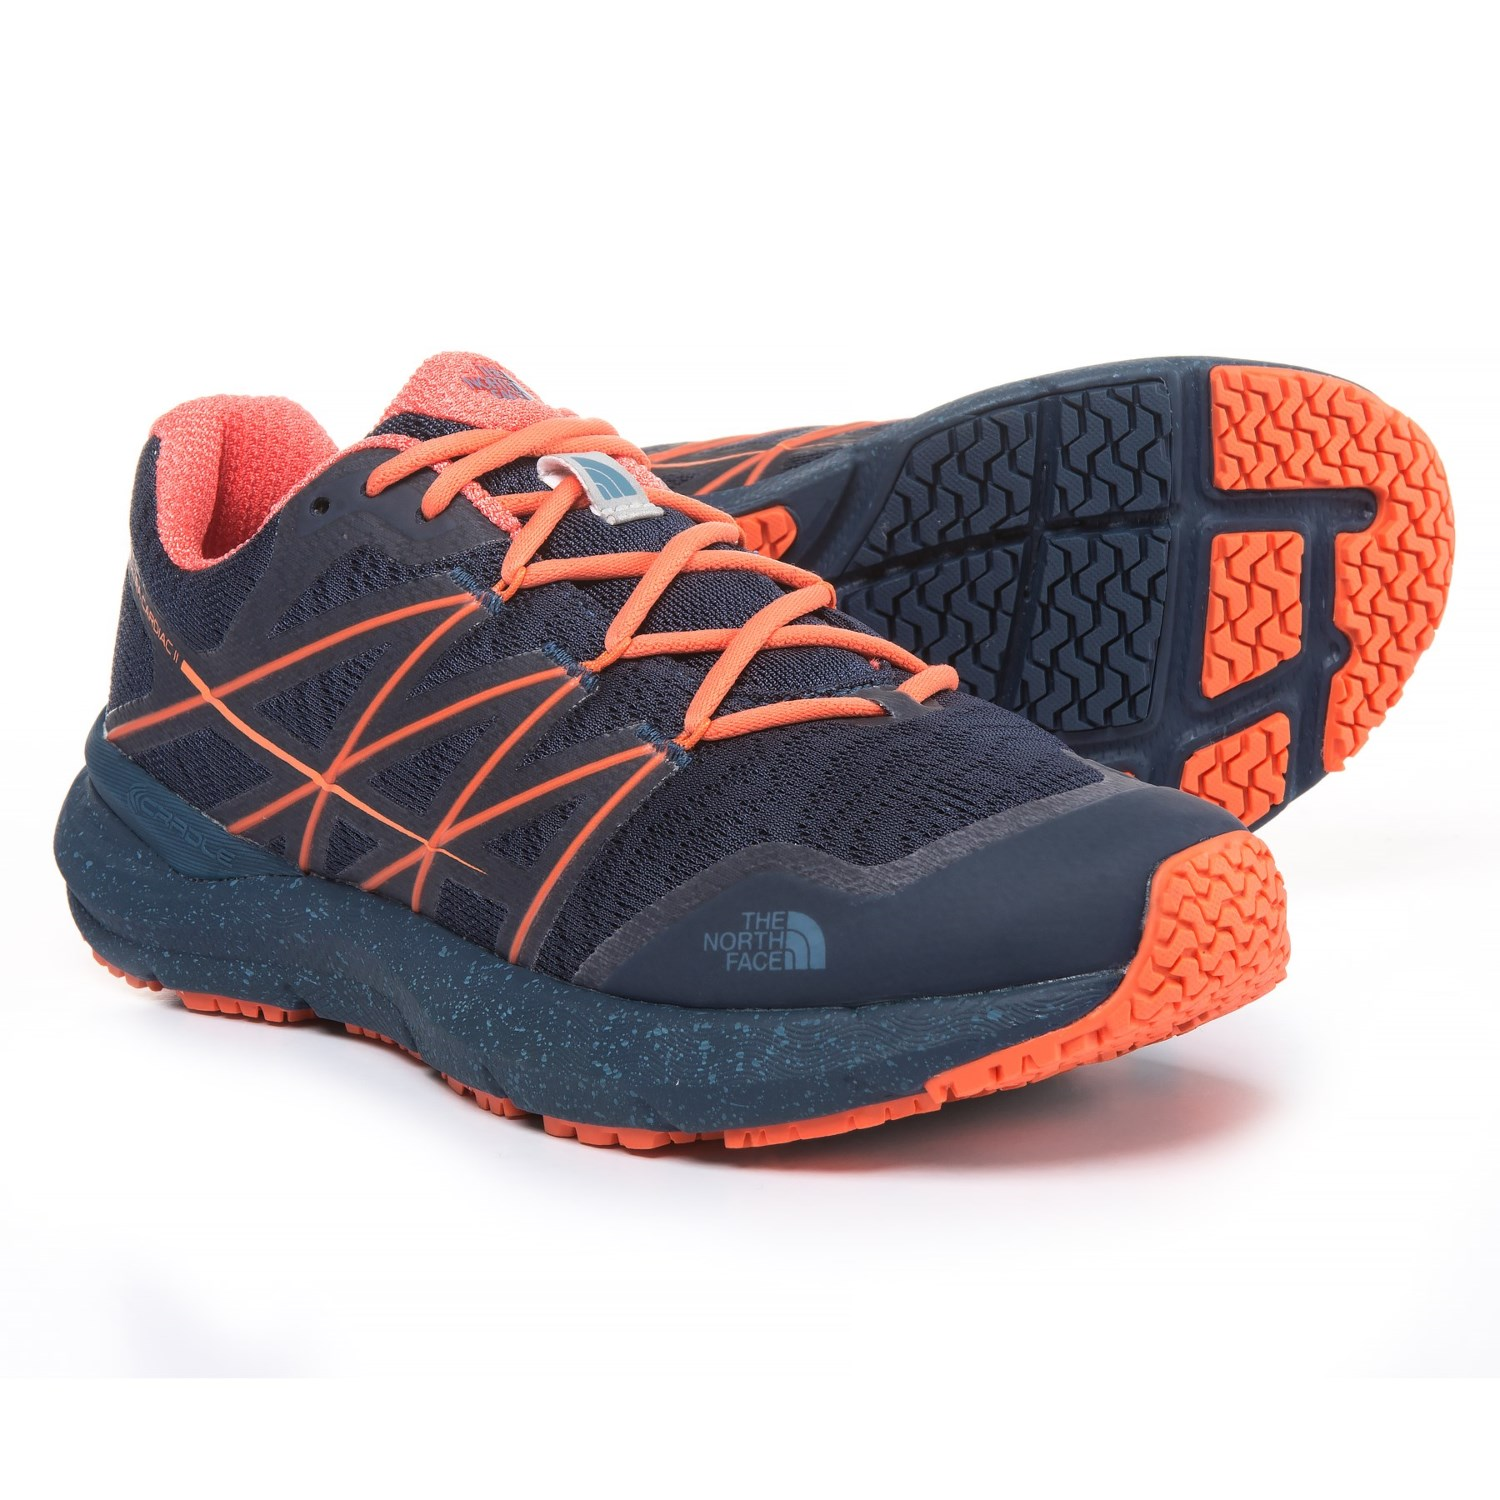 The North Face Ultra Cardiac Running Shoes